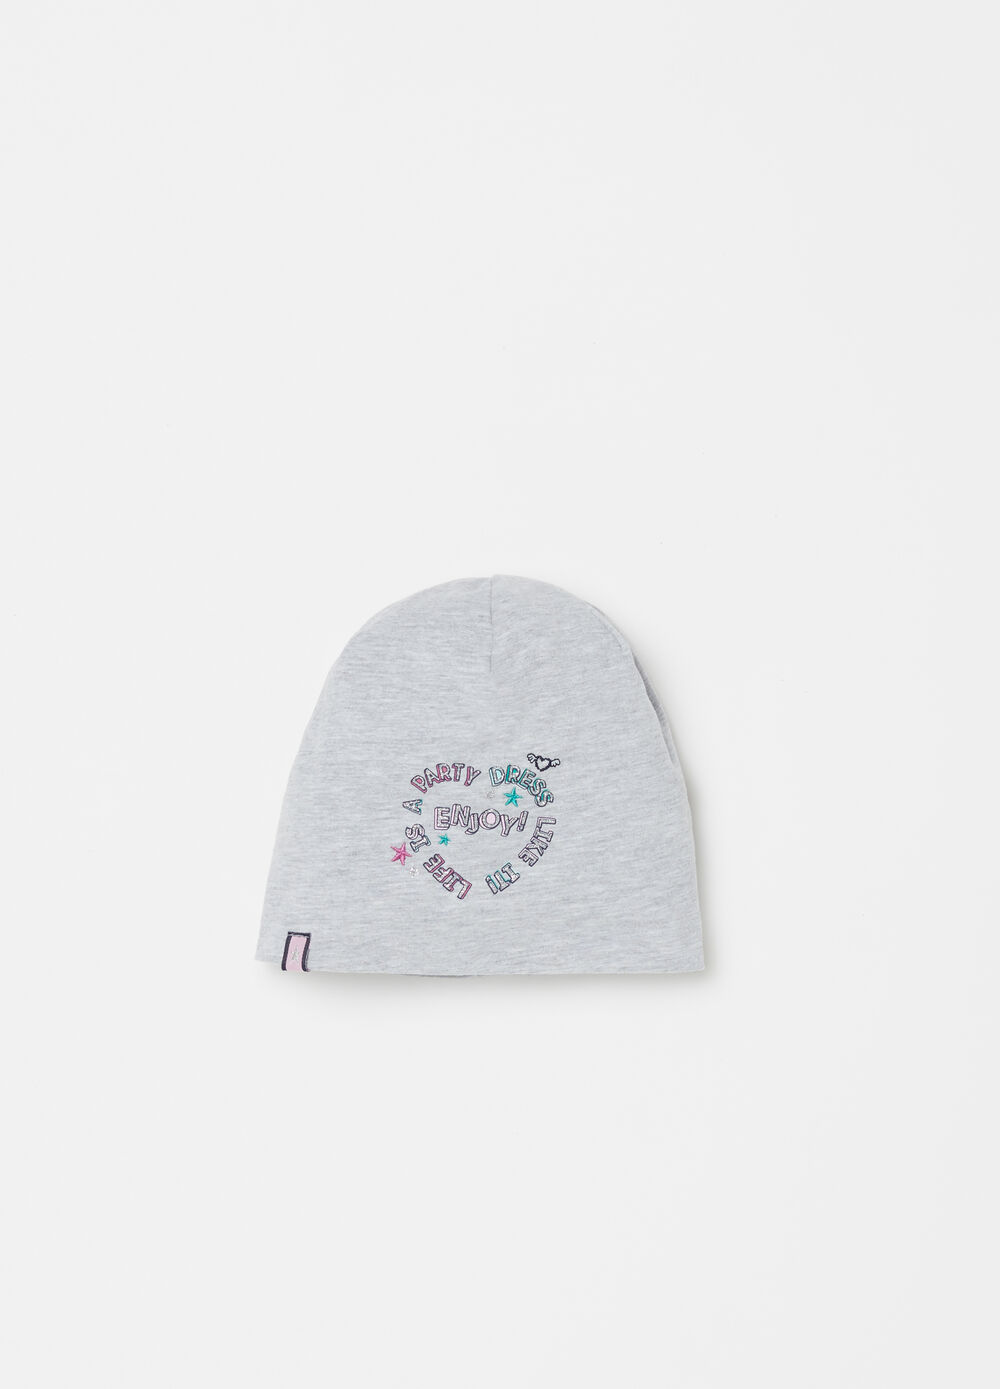 ***Jersey cap with glitter print.